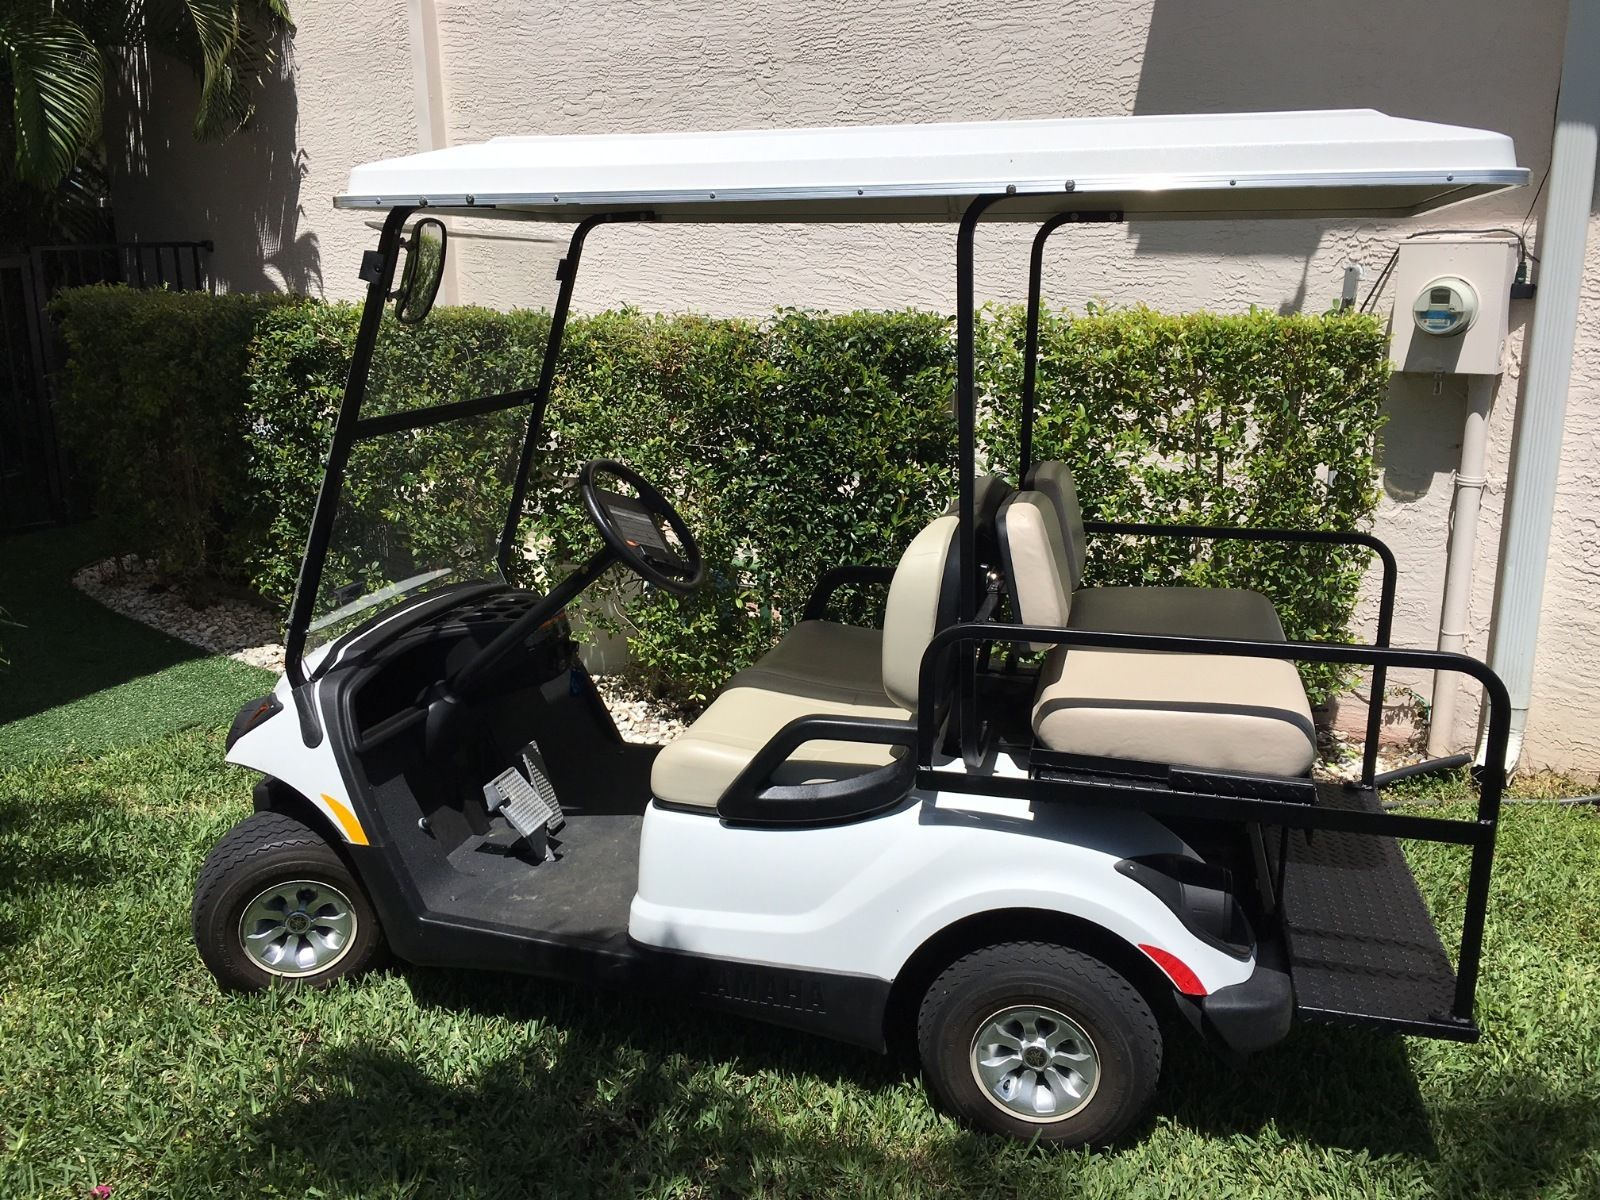 2009 yamaha electric golf cart for sale On used yamaha electric golf carts